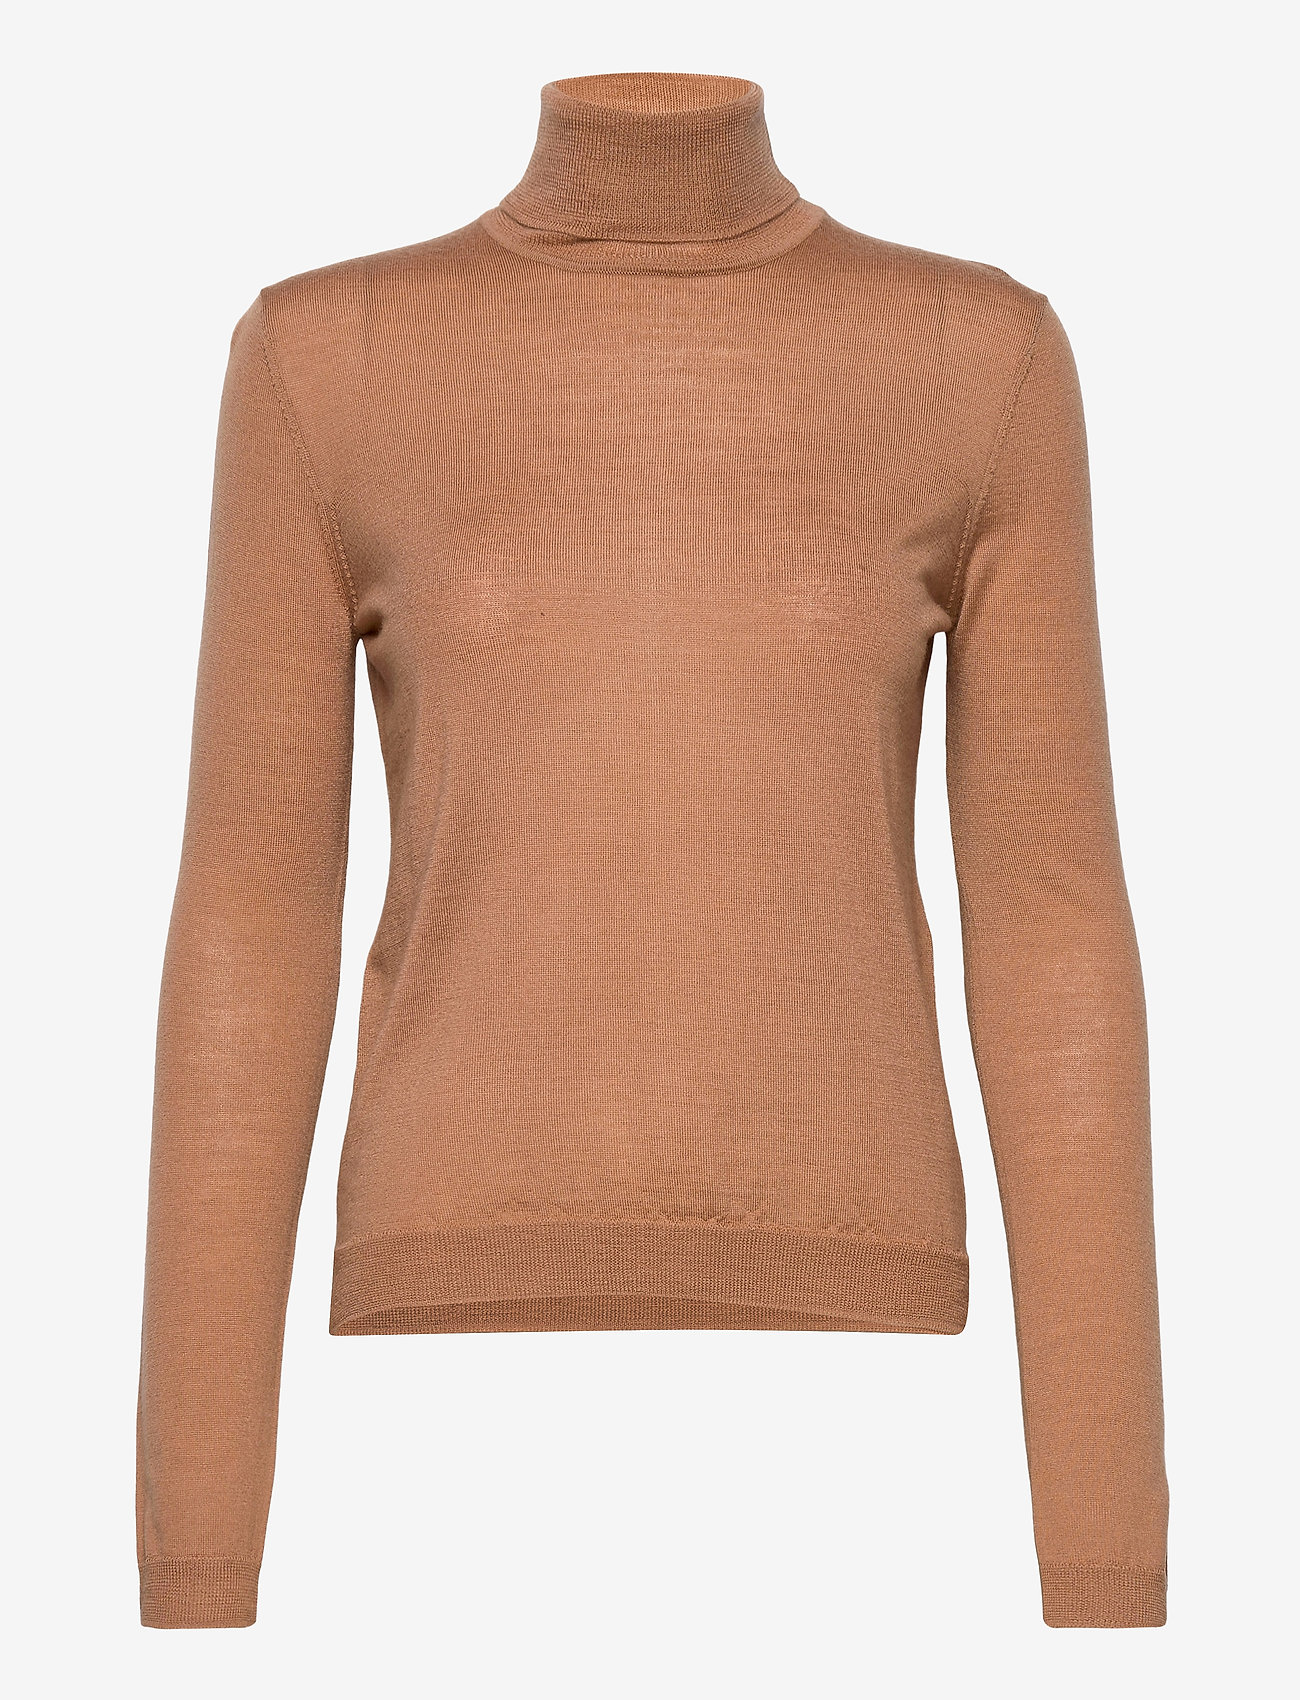 SAND - Fellini - Trish - turtlenecks - camel - 0